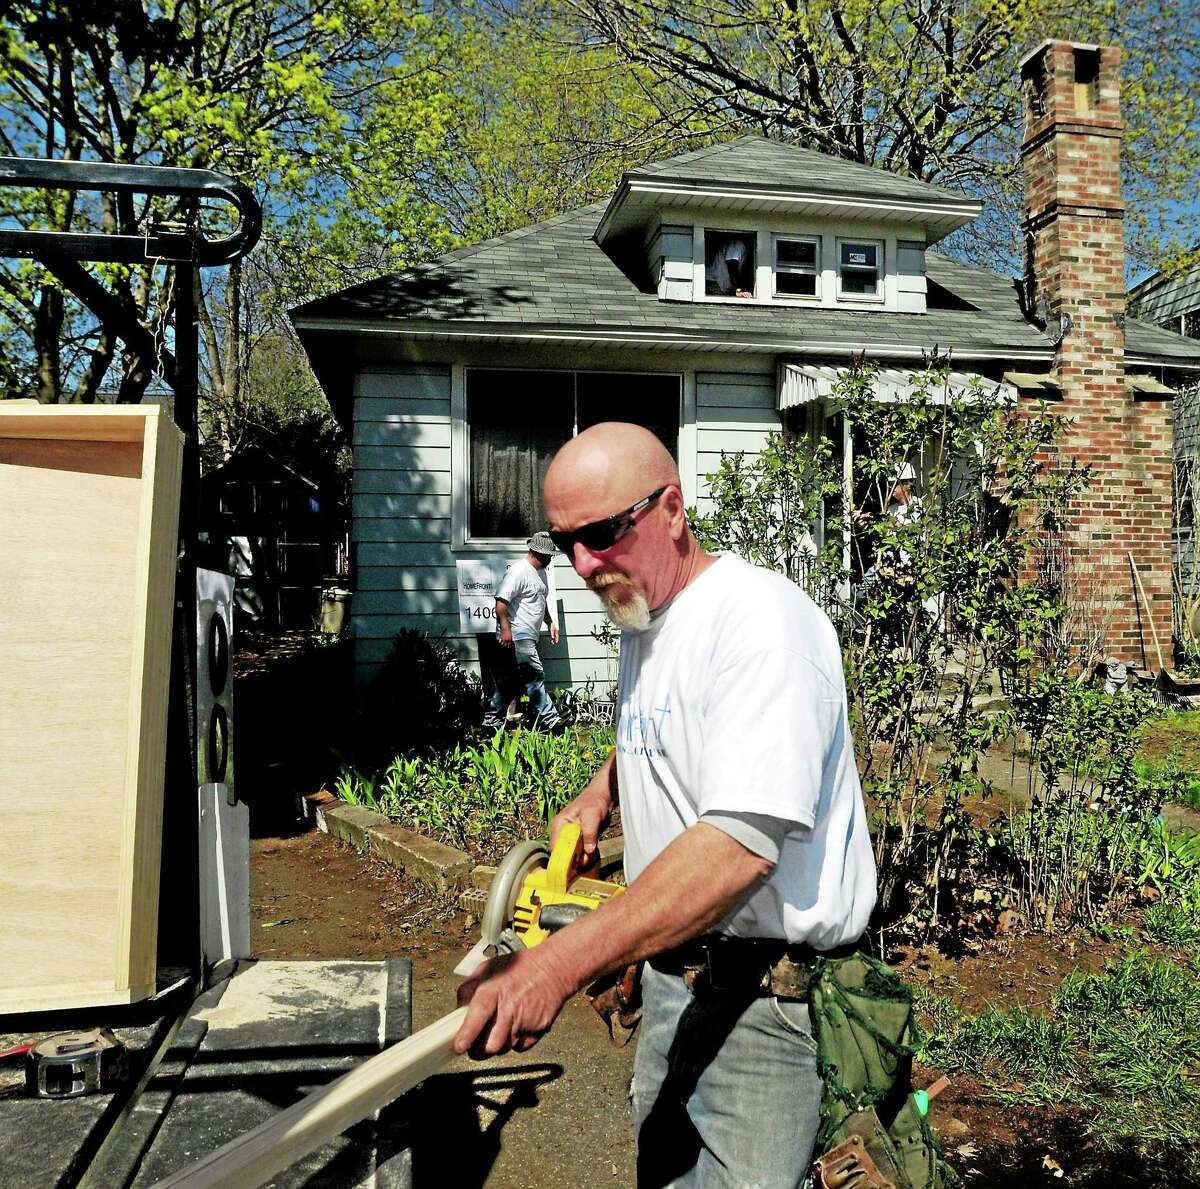 Union carpenter Tom Robison of Ansonia, a HomeFront Inc. volunteer, prepares to cut wood during a renovation project Saturday at the Malewicki residence on Whitney Avenue in Milford.